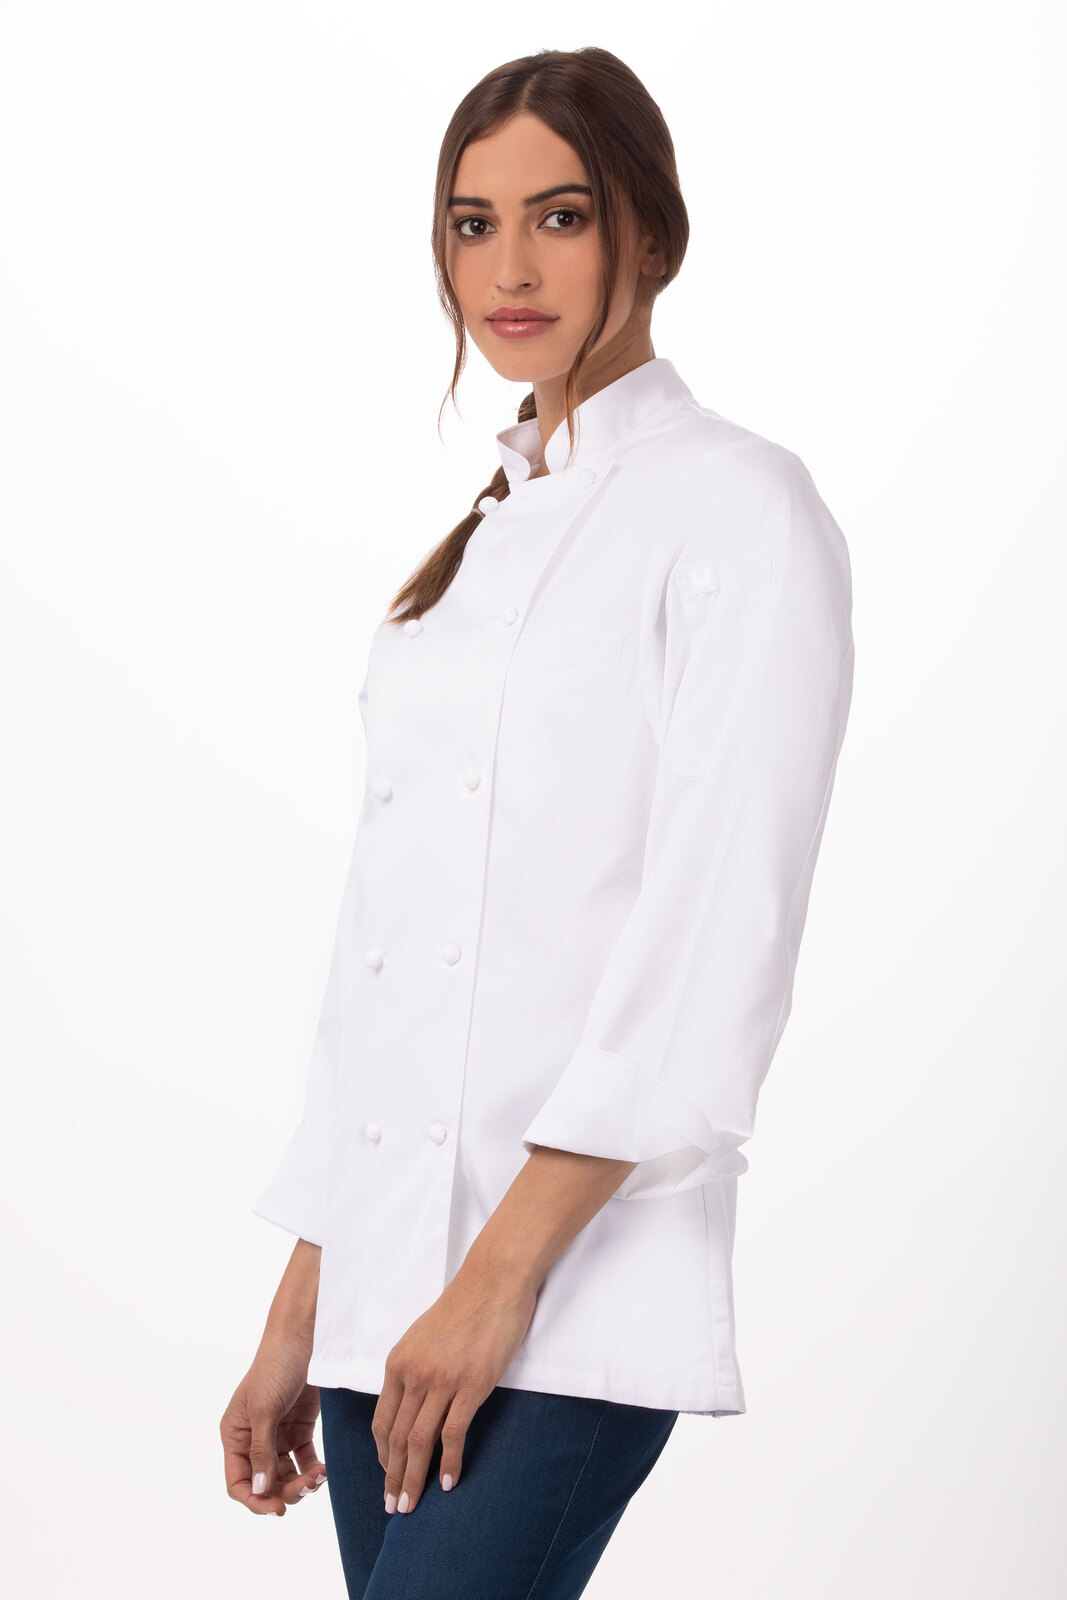 Elyse Premium Cotton Chef Jacket